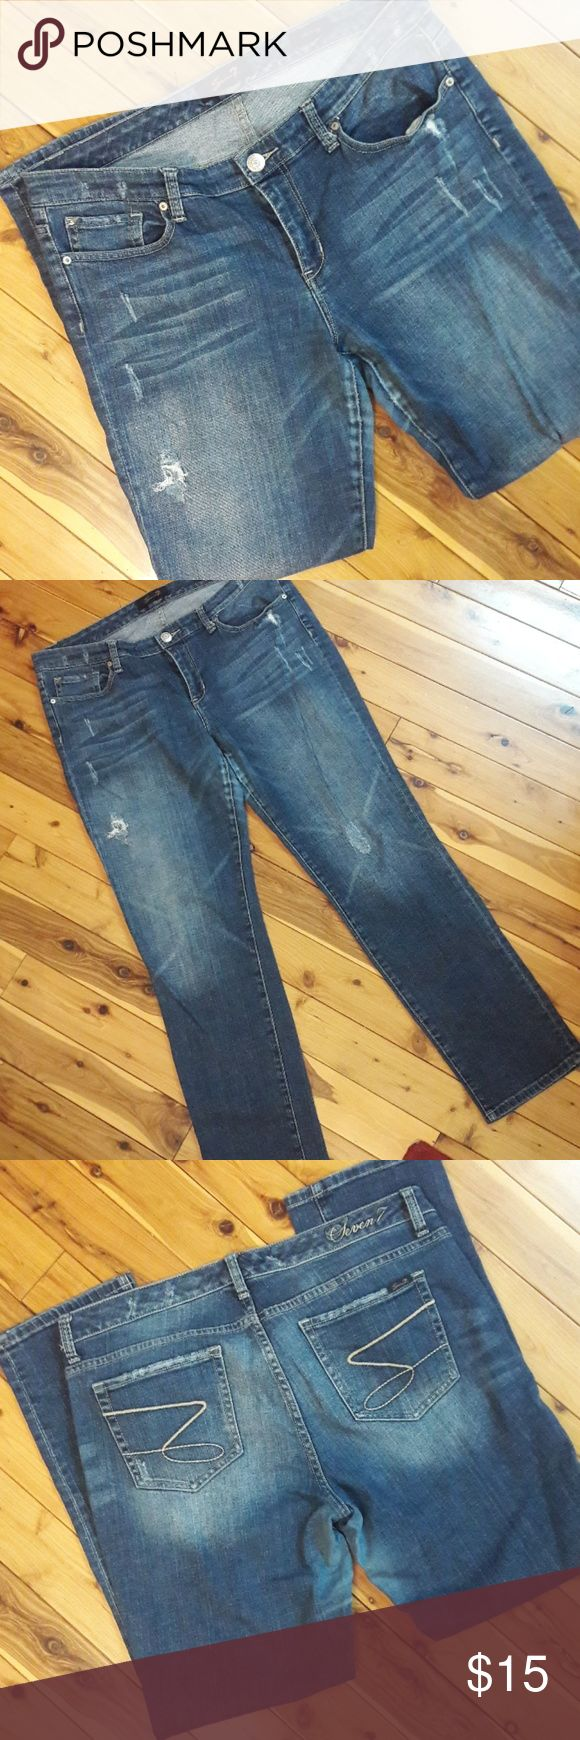 """Seven7 Skinny Distressed Dark Wash Jean, size 14 Gently used Seven7 distressed dark wash jean. hole above right knee and distressing found near pockets and left knee.  Waist: 18"""" Hips, 19.5"""" Rise, 10"""" Inseam, 30.5 Length: 40""""  Please message me with any questions.  A portion of sales are going toward disaster relief.  Thank you. Seven7 Jeans Skinny"""